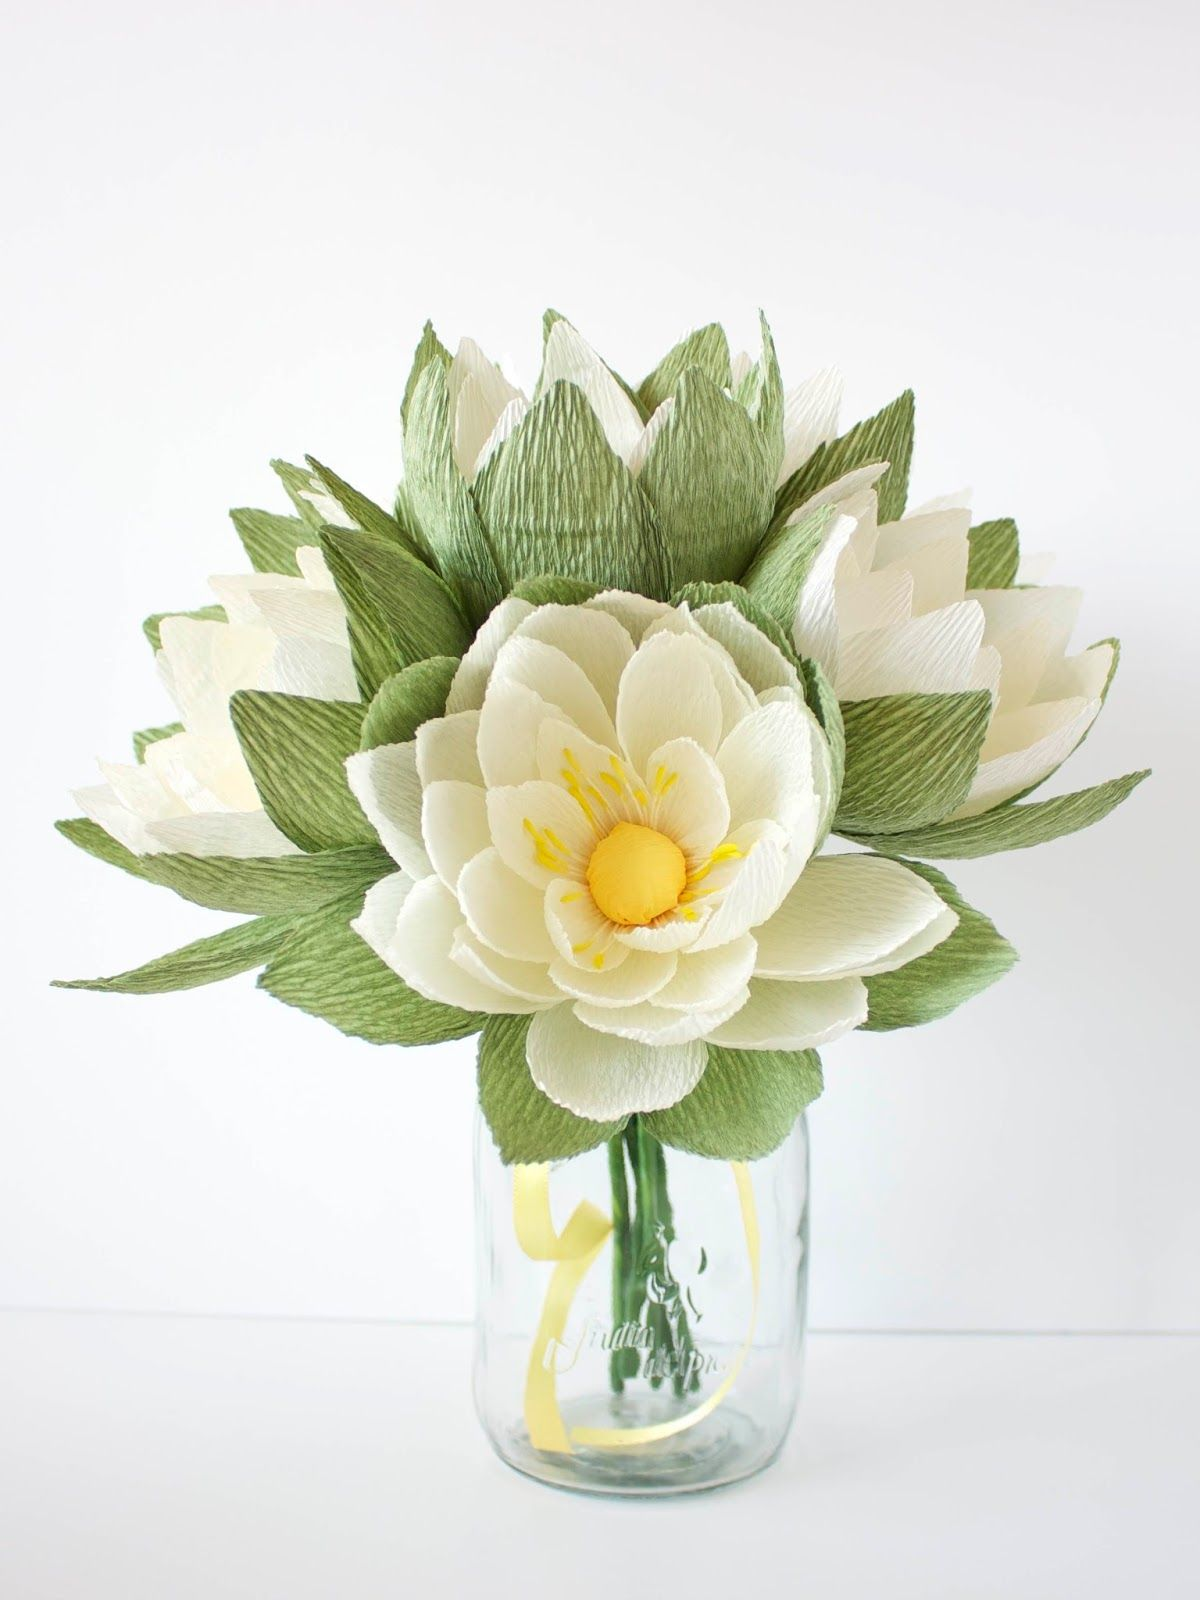 Crepe Paper Waterlily Arrangement Designed And Handcrafted By